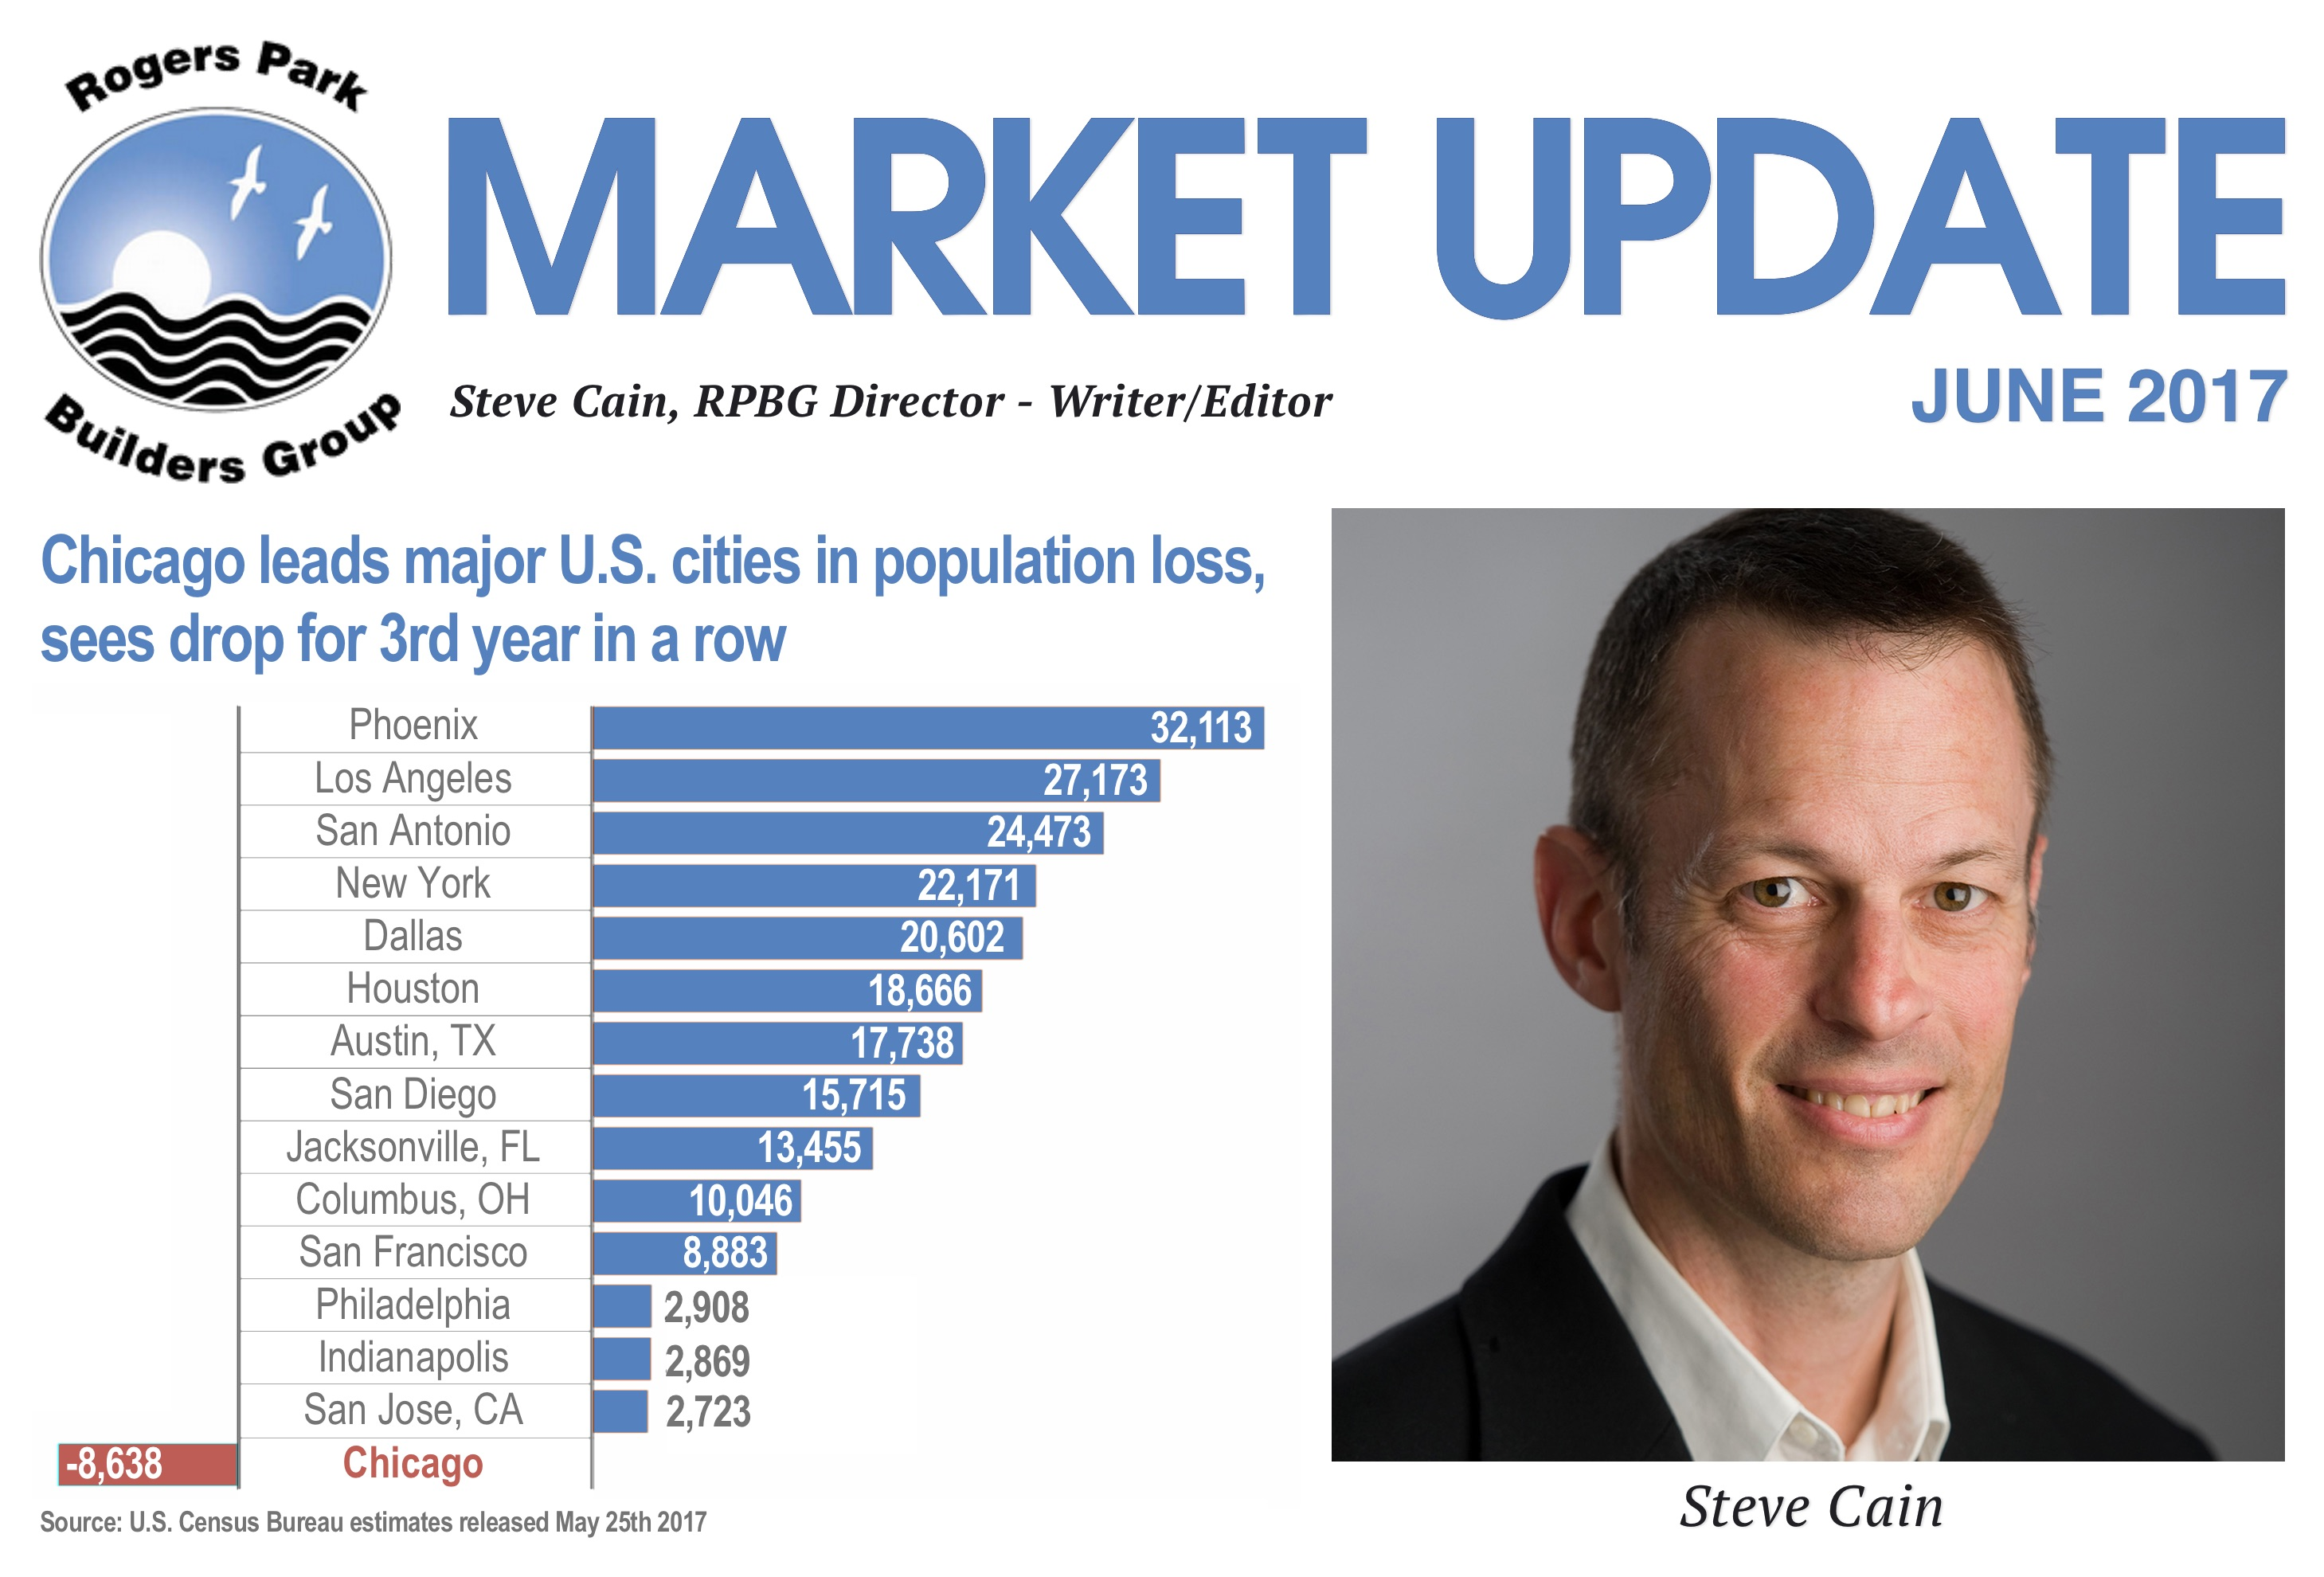 June 2017 Market Update - Chicago leads major U.S. cities in population loss, sees drop for 3rd year in a row | Steve Cain, RPBG Director - Writer / Editor